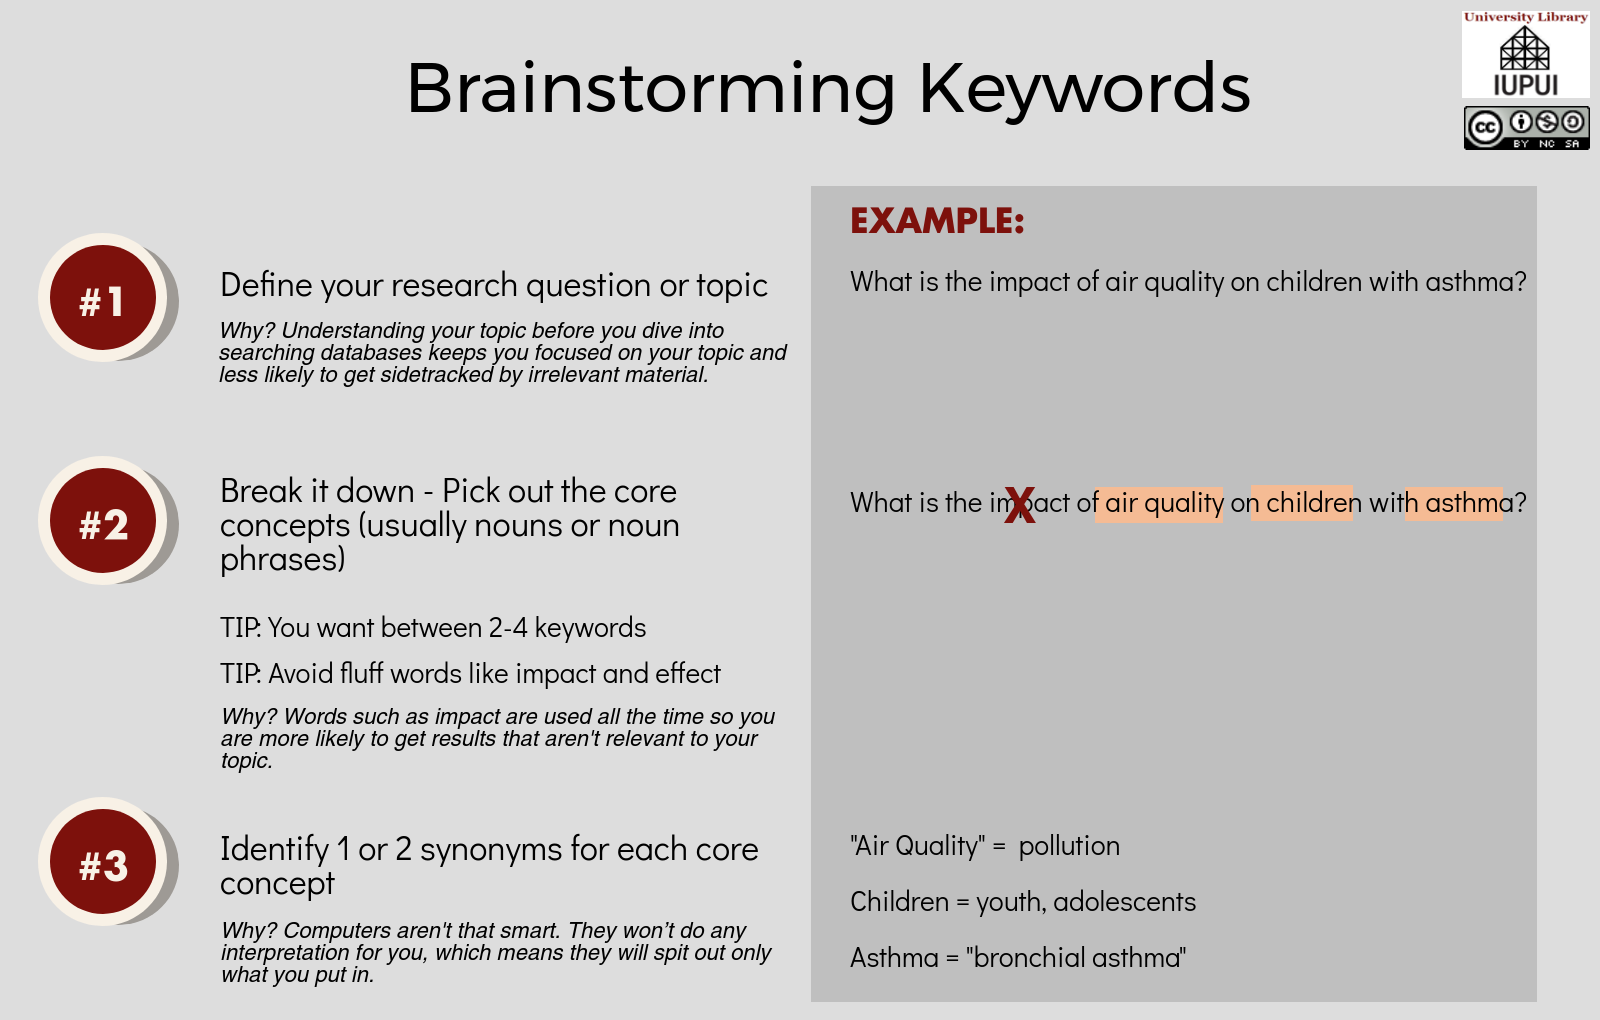 Brainstorming Keywords